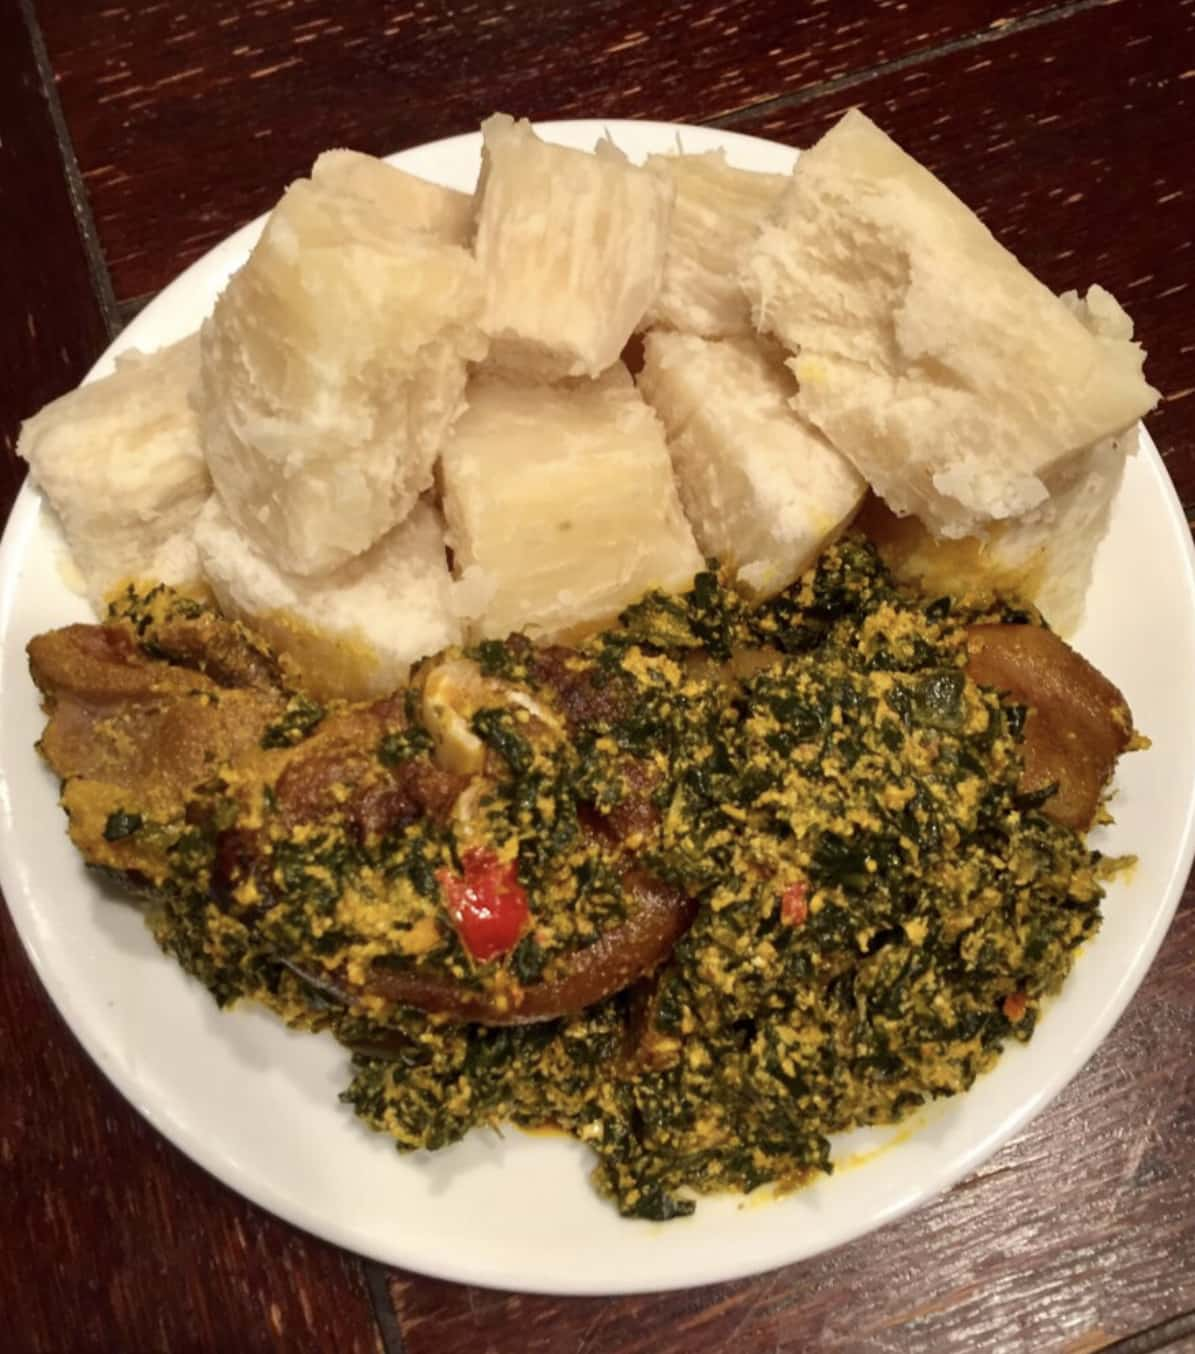 Food from Fannie's West African Cuisine